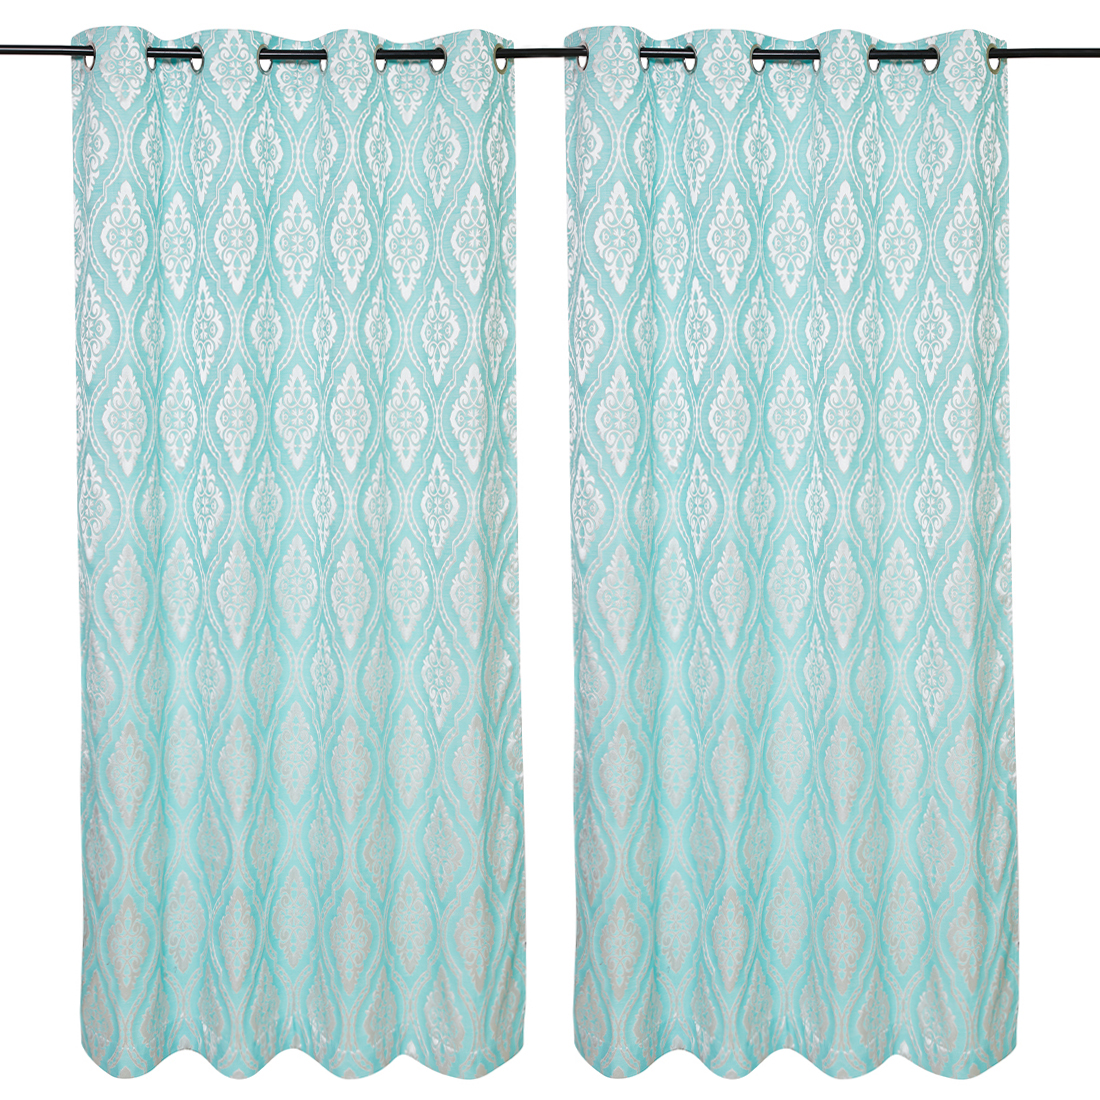 Amour Jacquard set of 2 Polyester Door Curtains in Turquoise Colour by Living Essence